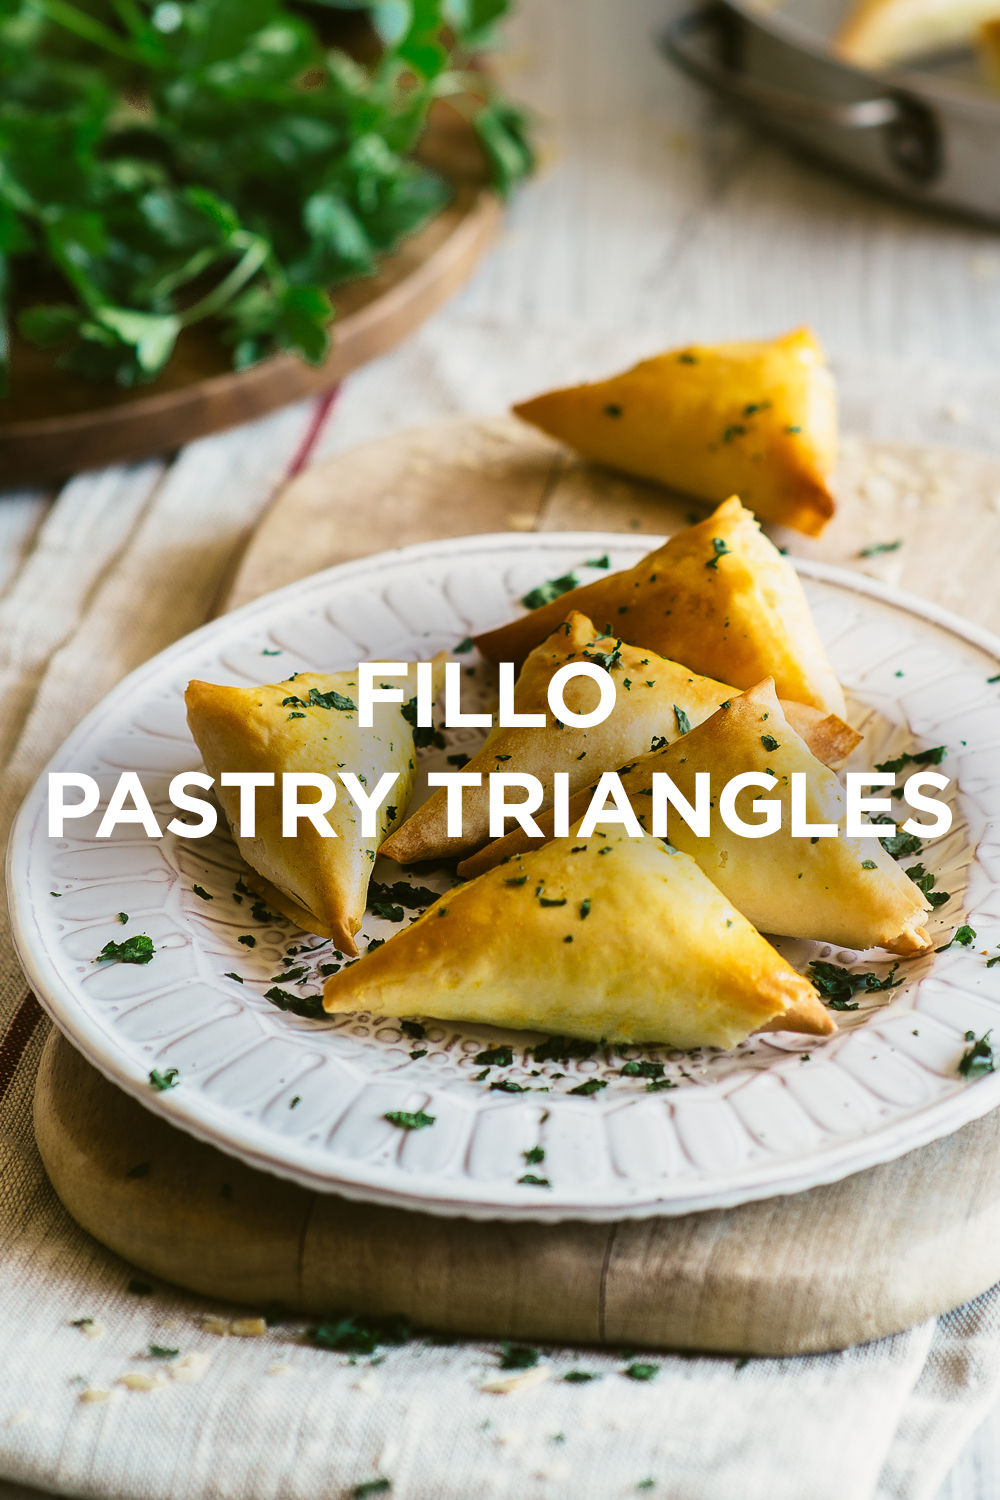 Fillo-Pastry-Triangles.jpg